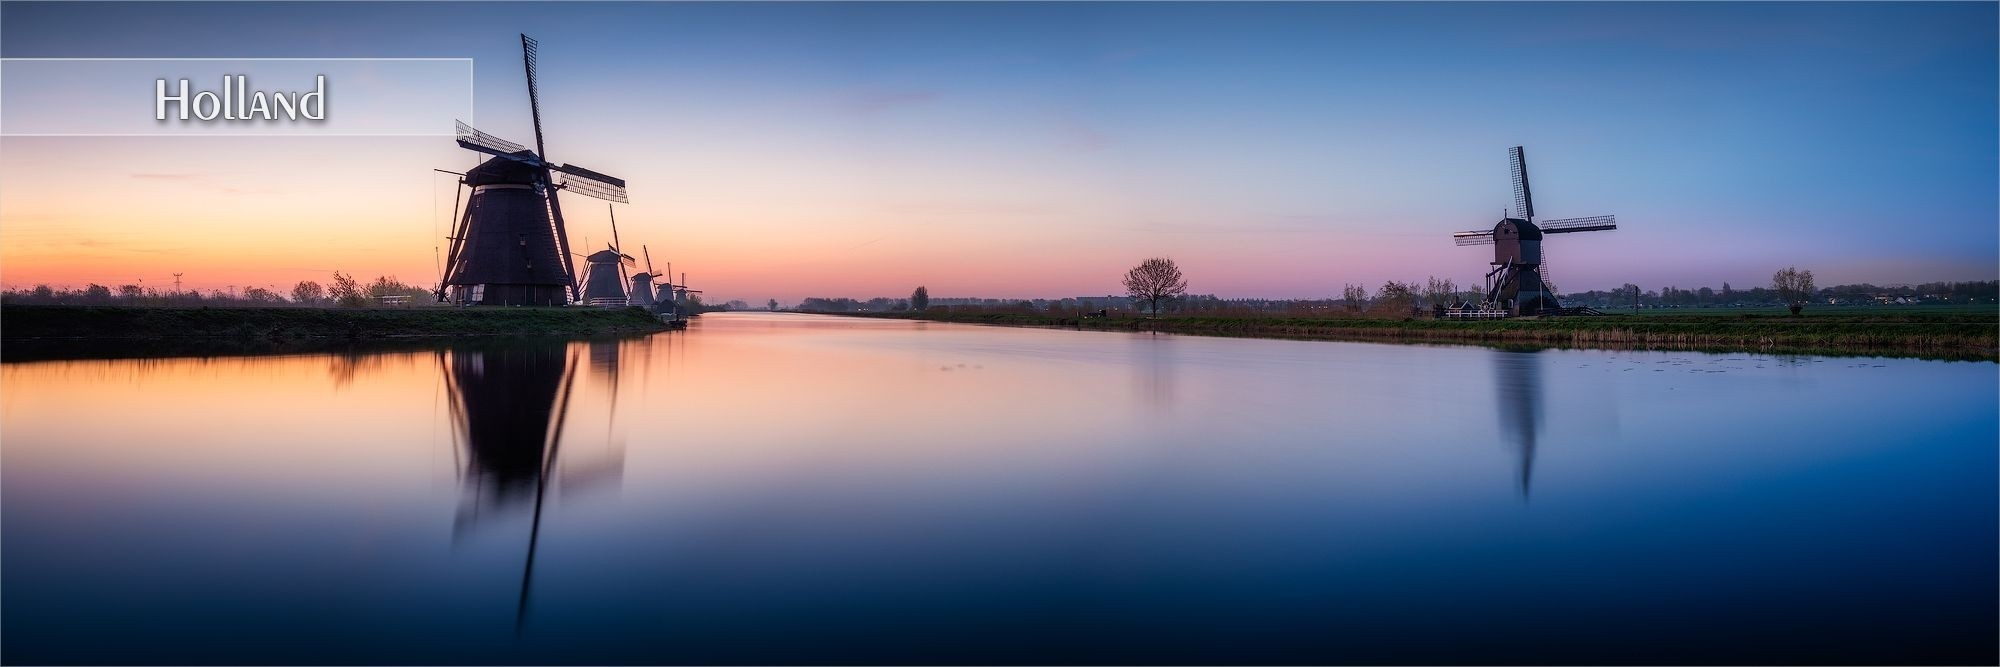 FineArt & Panoramafotografien aus Holland